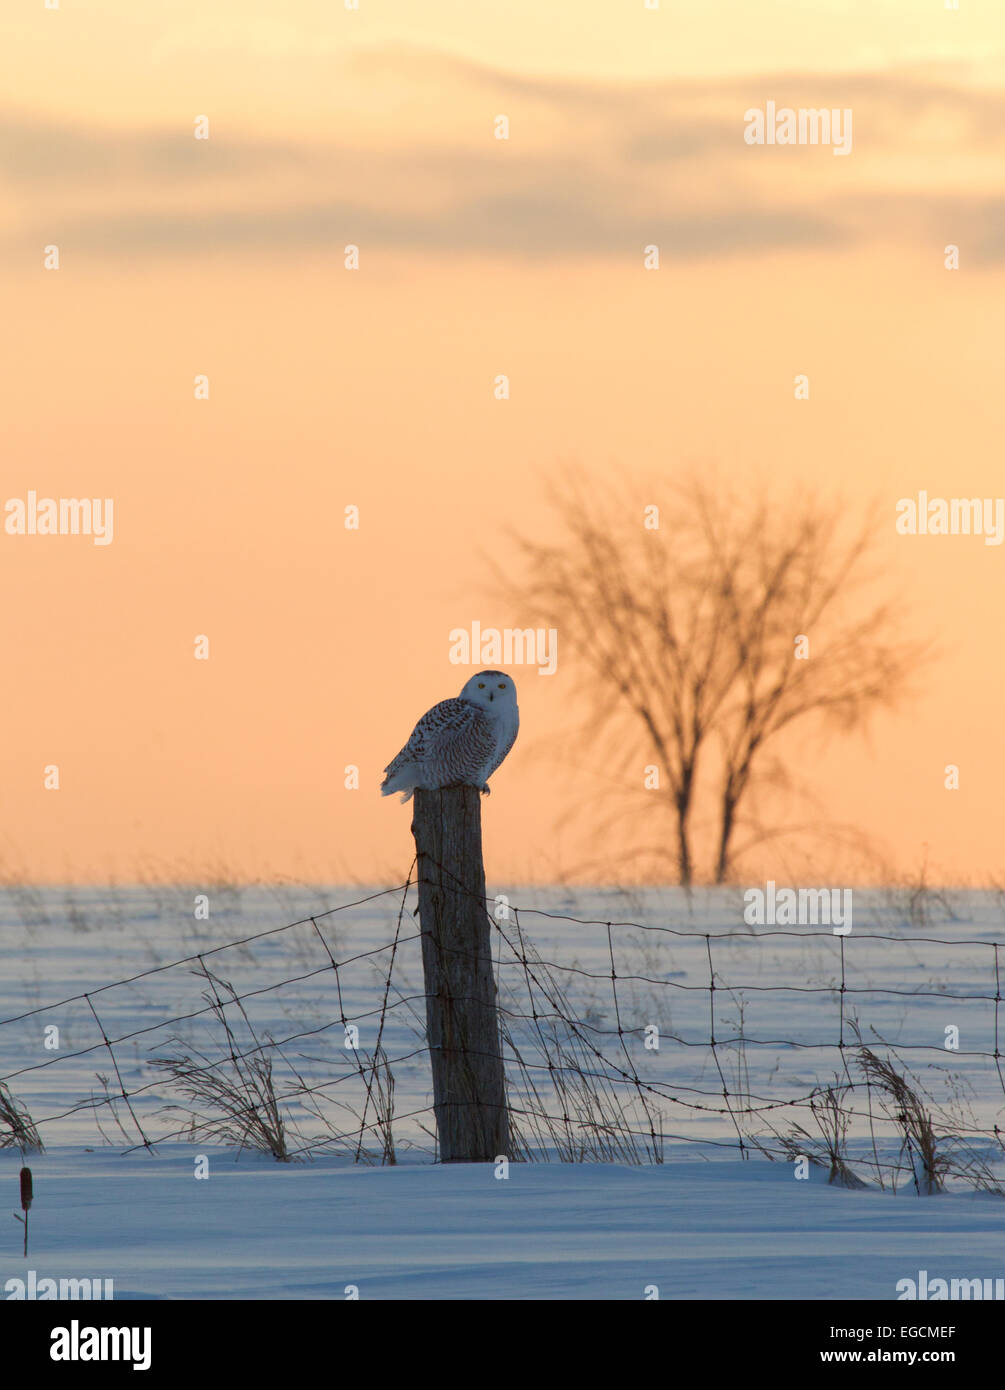 Snowy Owl Perched on Fence Post Sunrise - Stock Image